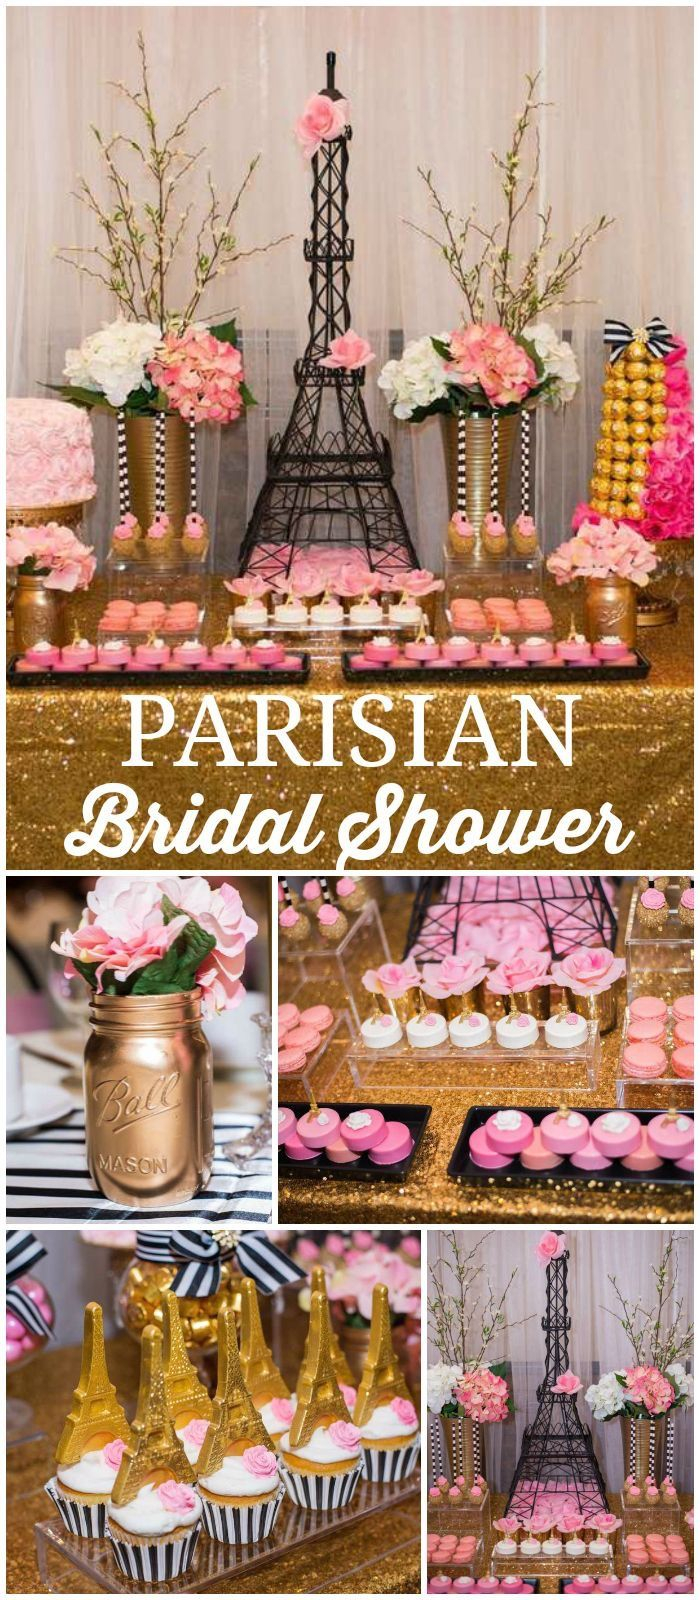 best photo place images on Pinterest  Events Parisian birthday